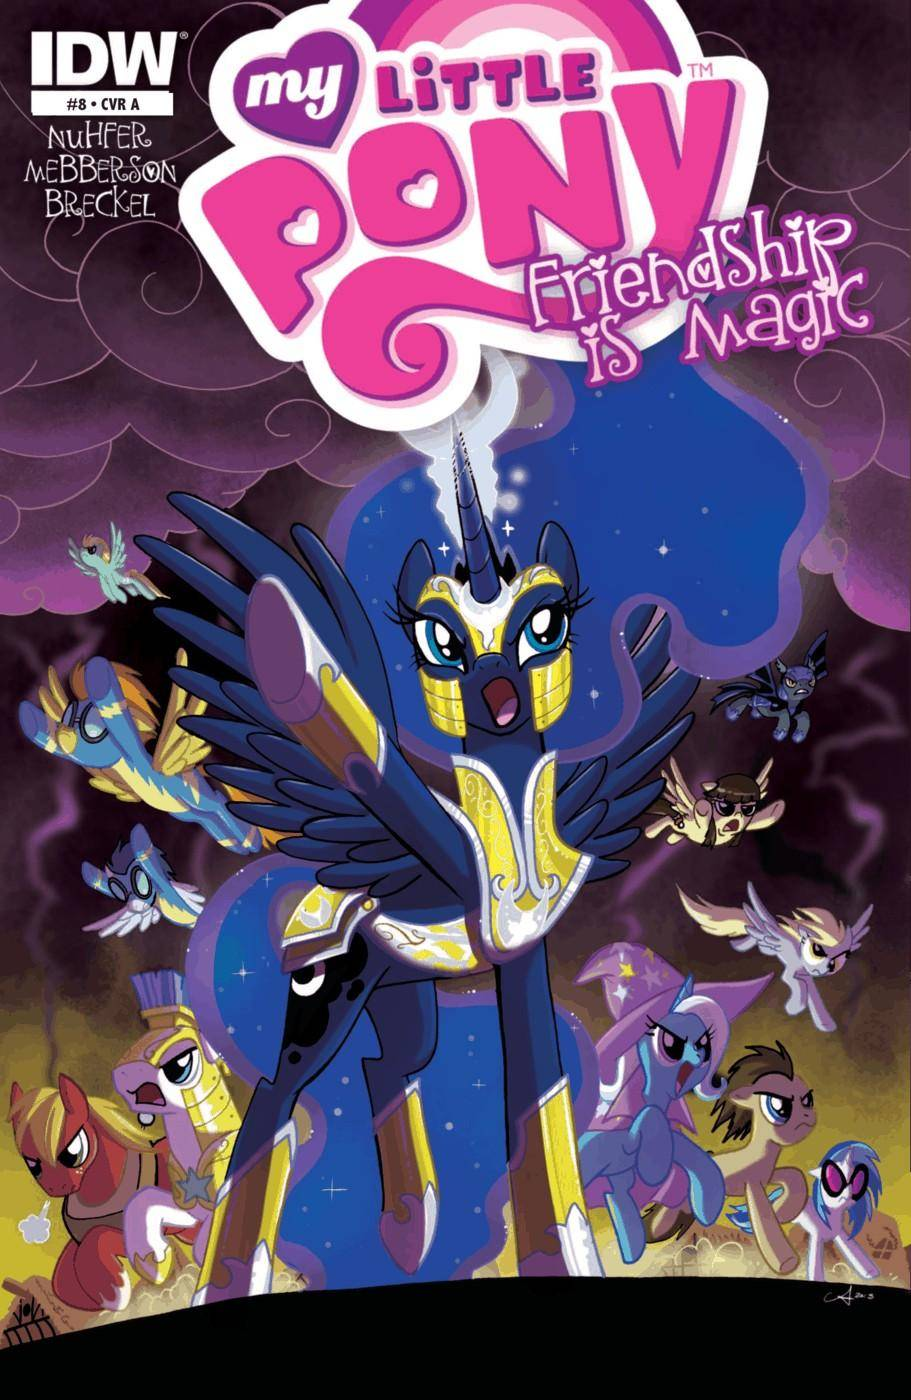 My Little Pony - Friendship is Magic 008 2013 3 covers digital